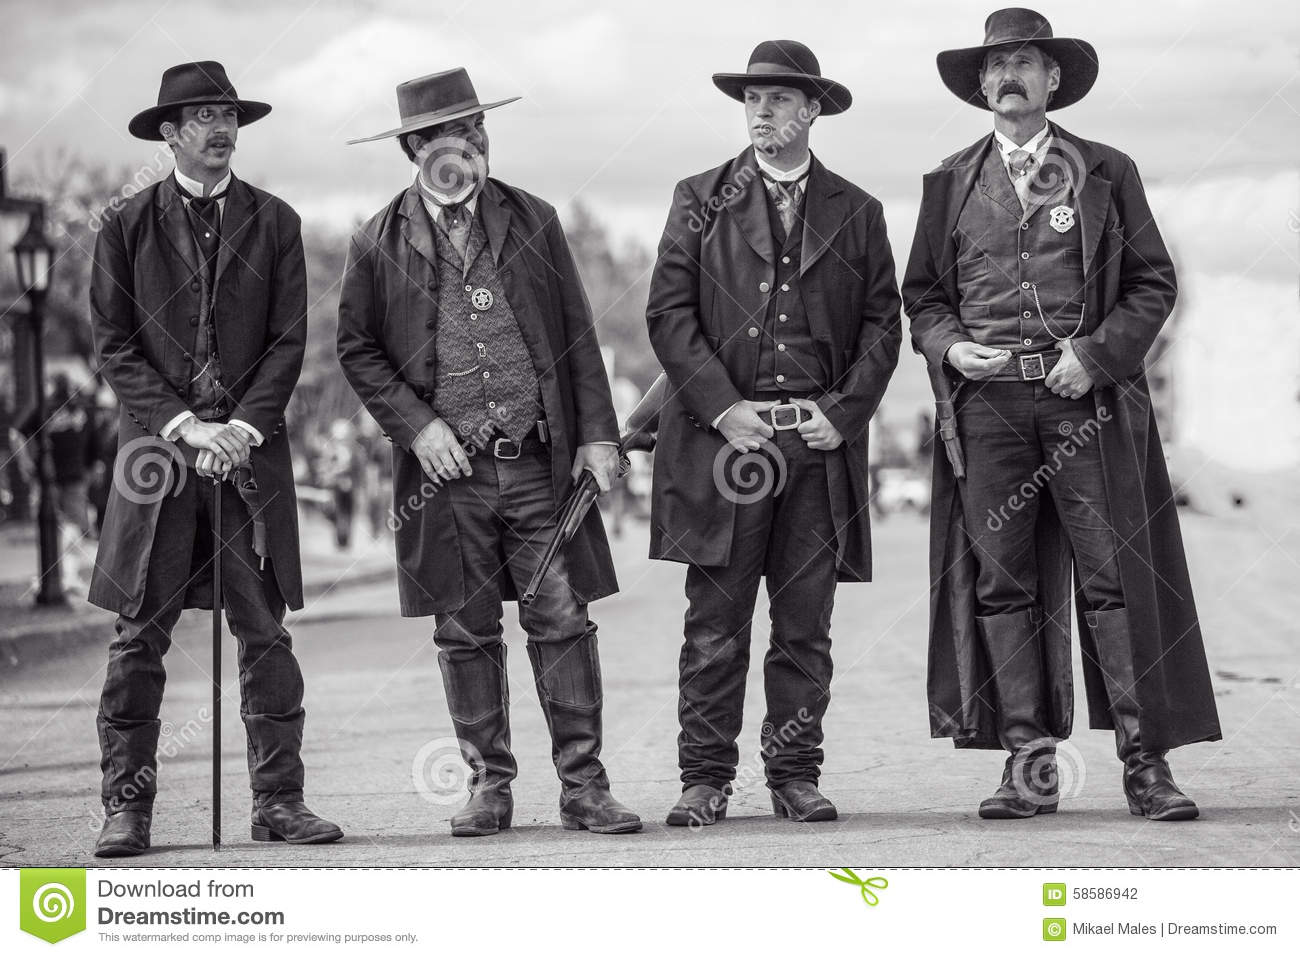 Wyatt Earp and brothers in Tombstone Arizona during wild west show